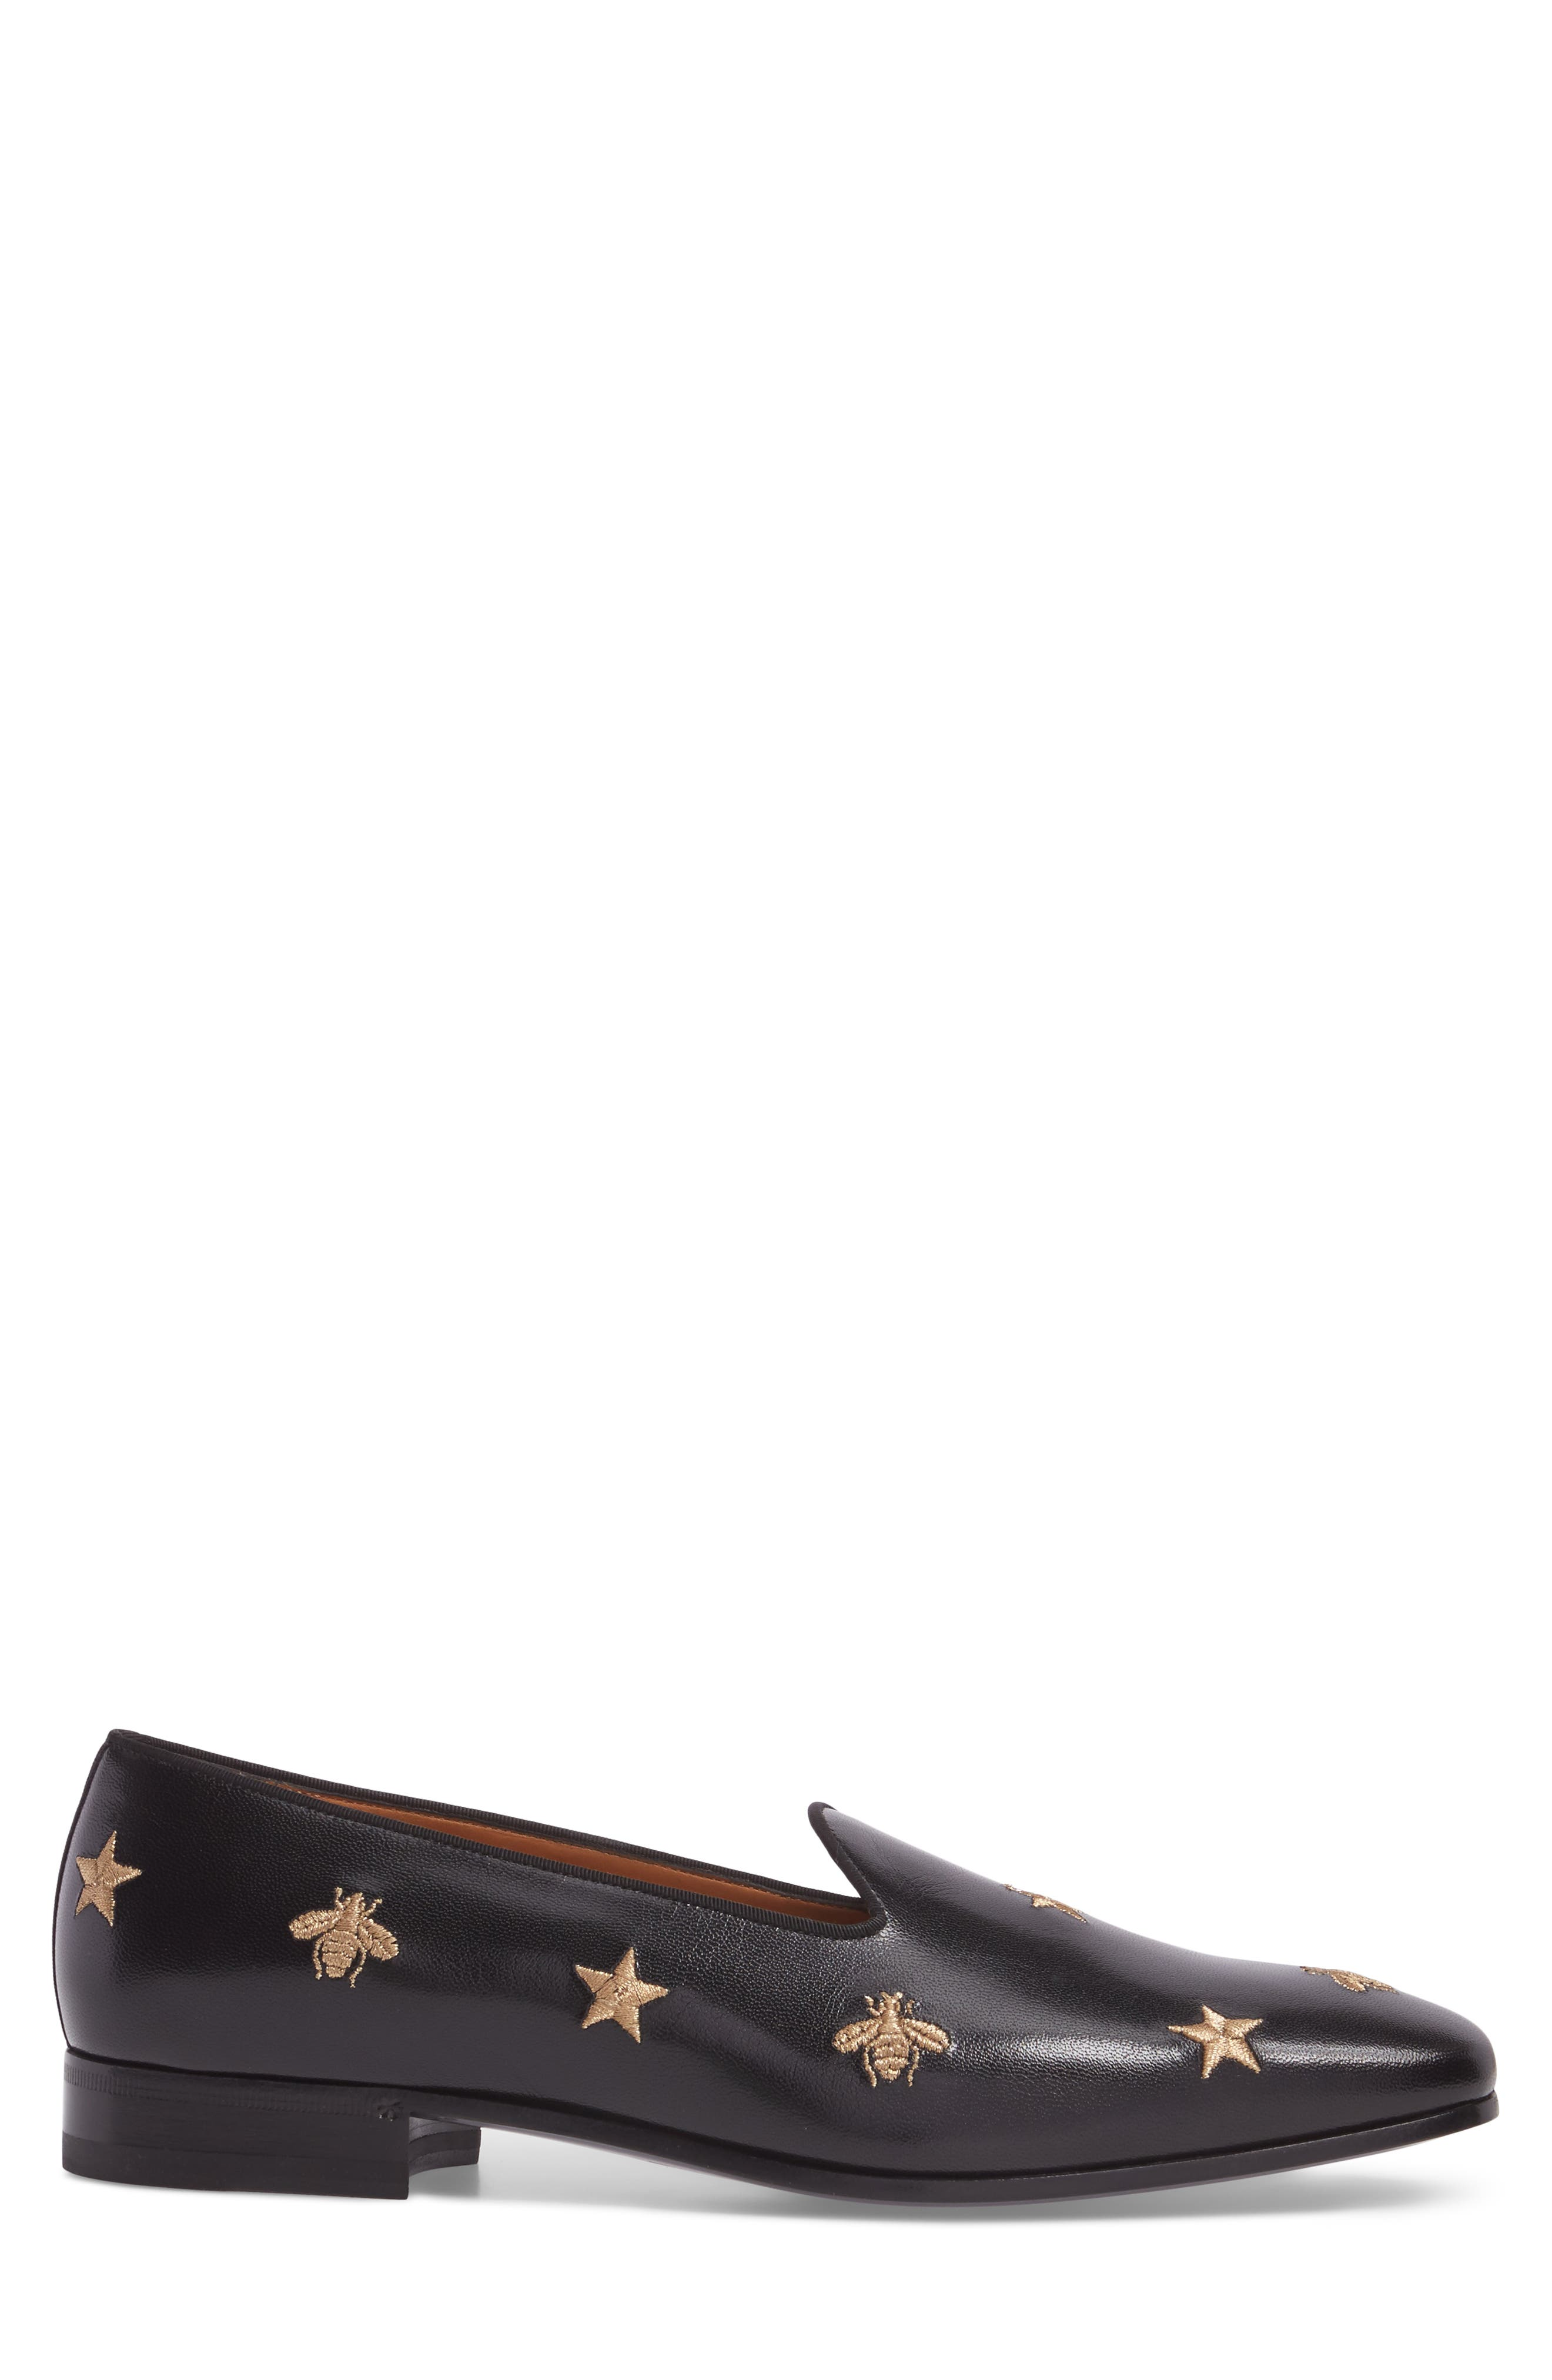 Embroidered Leather Loafer,                             Alternate thumbnail 3, color,                             001